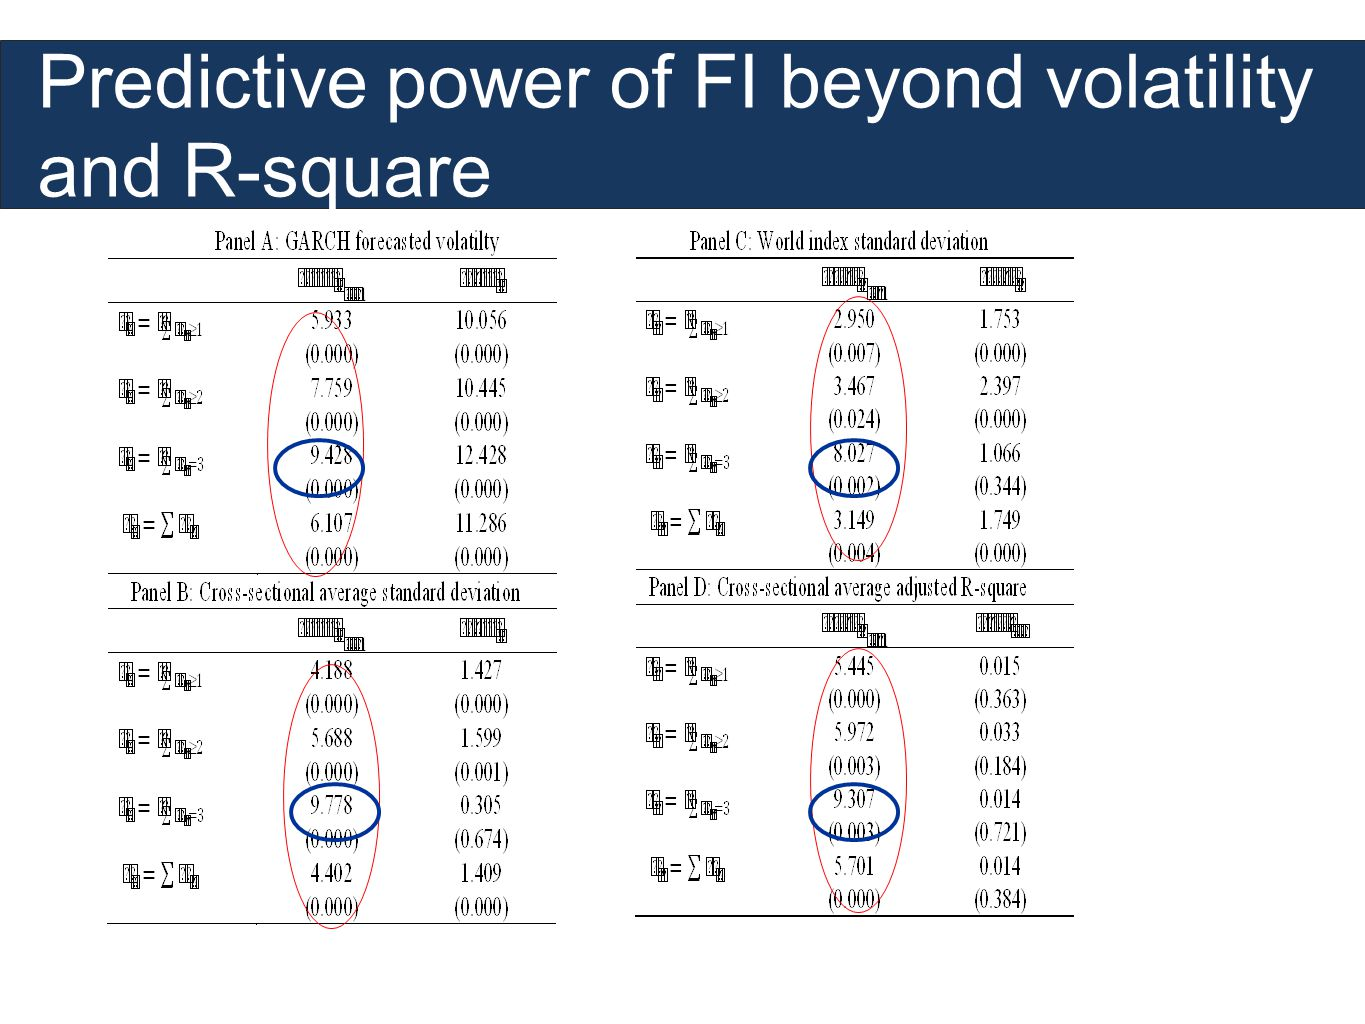 Predictive power of FI beyond volatility and R-square